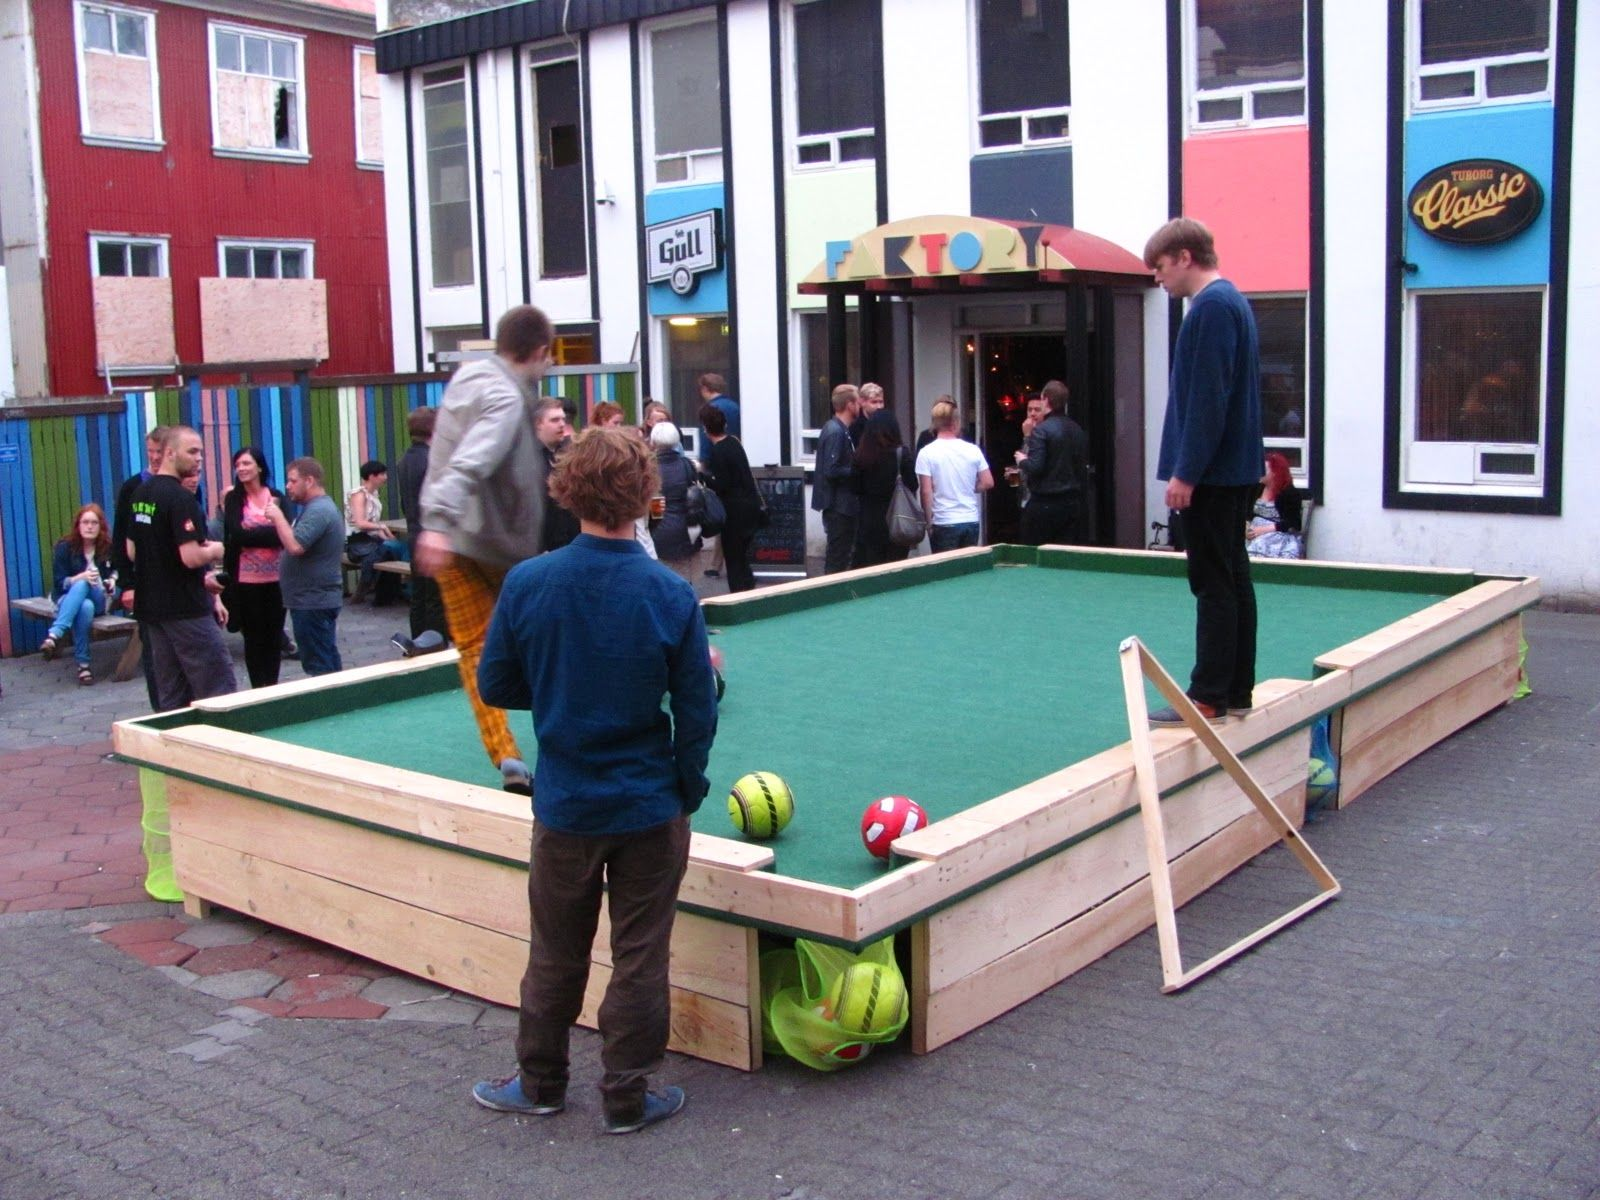 Lifesize pool! Outdoor games, Life size games, Outdoor